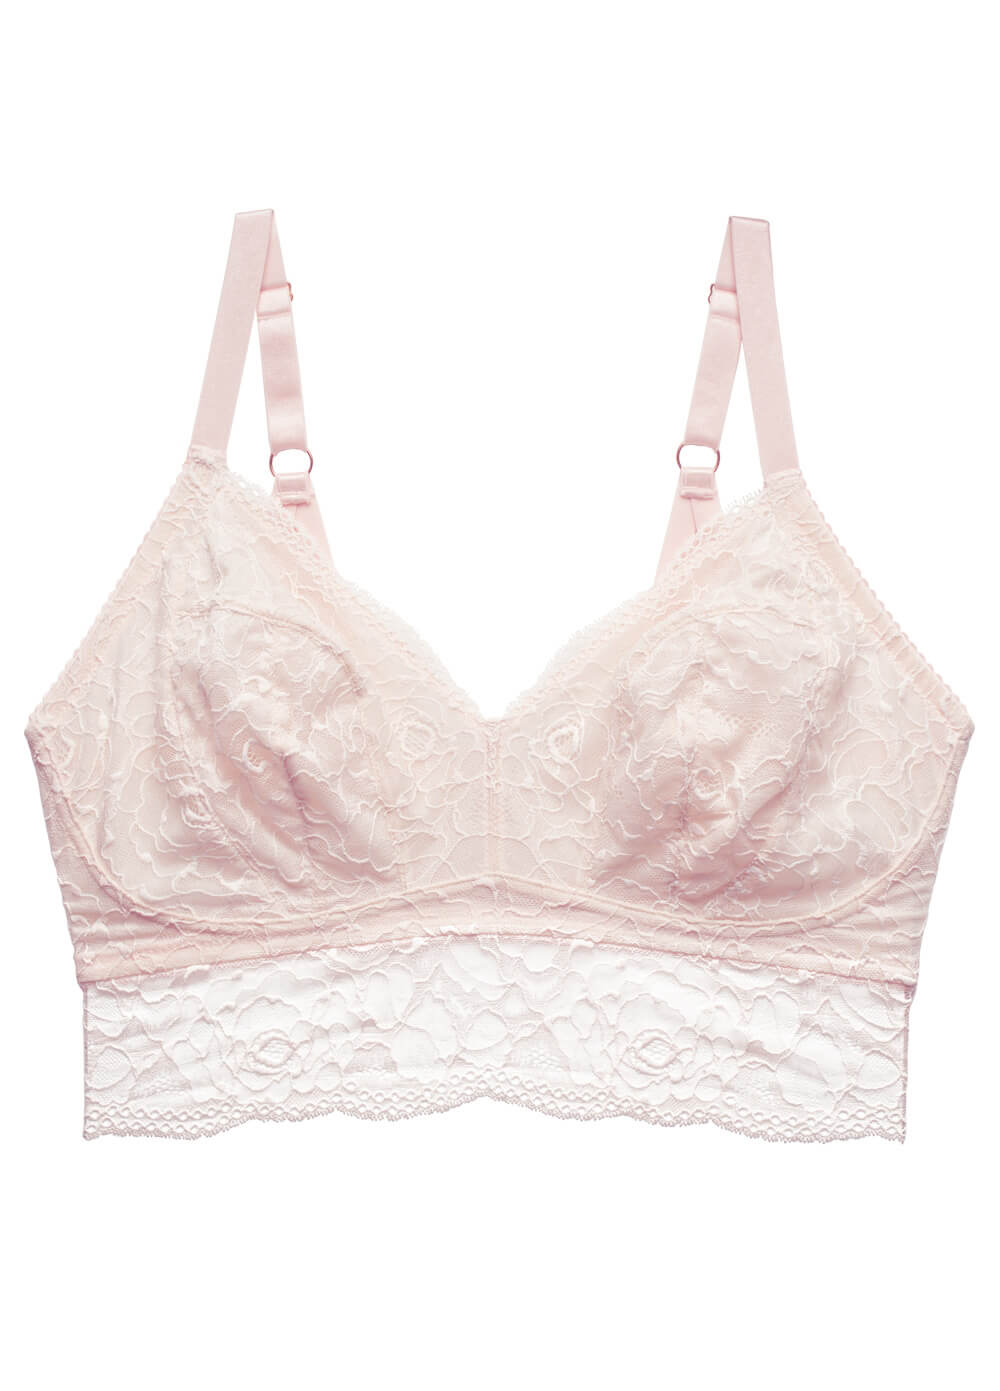 Heroine Maternity Bralette in Shell Pink by HOTmilk